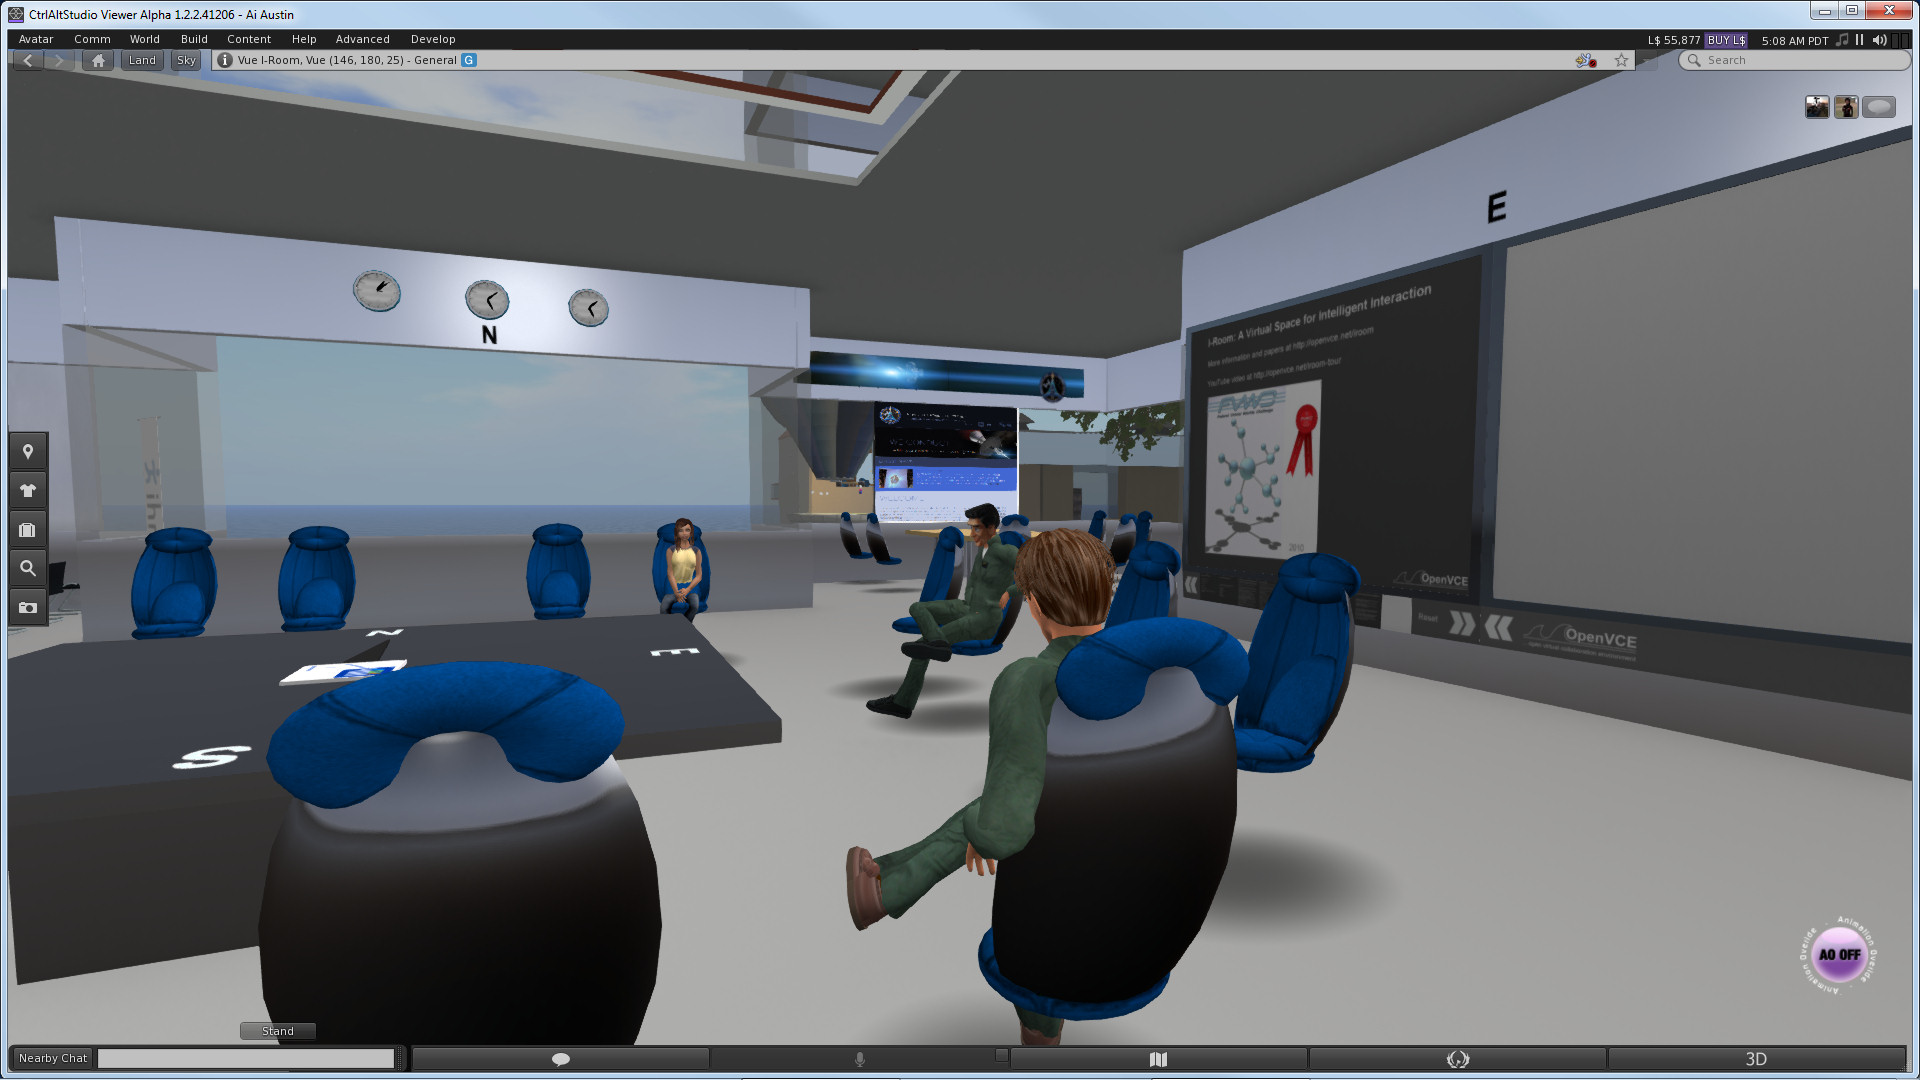 Oculus Rift DK2 – Second Life Viewers | Austin Tate's Blog